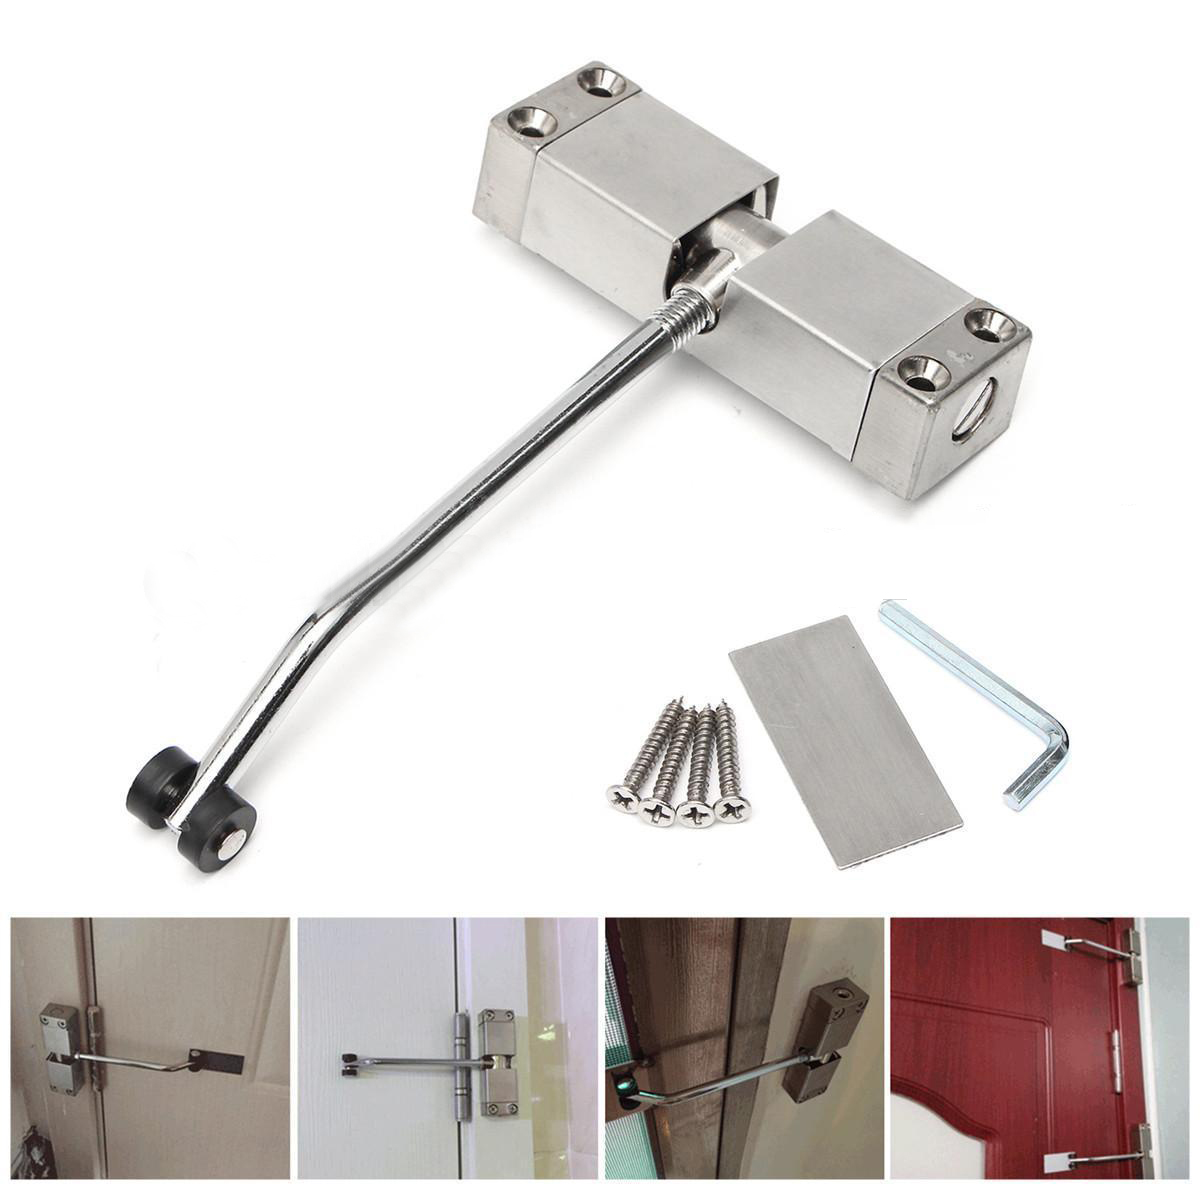 Brand new Stainless Steel Durable Automatic Mounted Spring Door Closer Adjustable Surface Door Closer 160x96x20mm Drop ShoppingBrand new Stainless Steel Durable Automatic Mounted Spring Door Closer Adjustable Surface Door Closer 160x96x20mm Drop Shopping